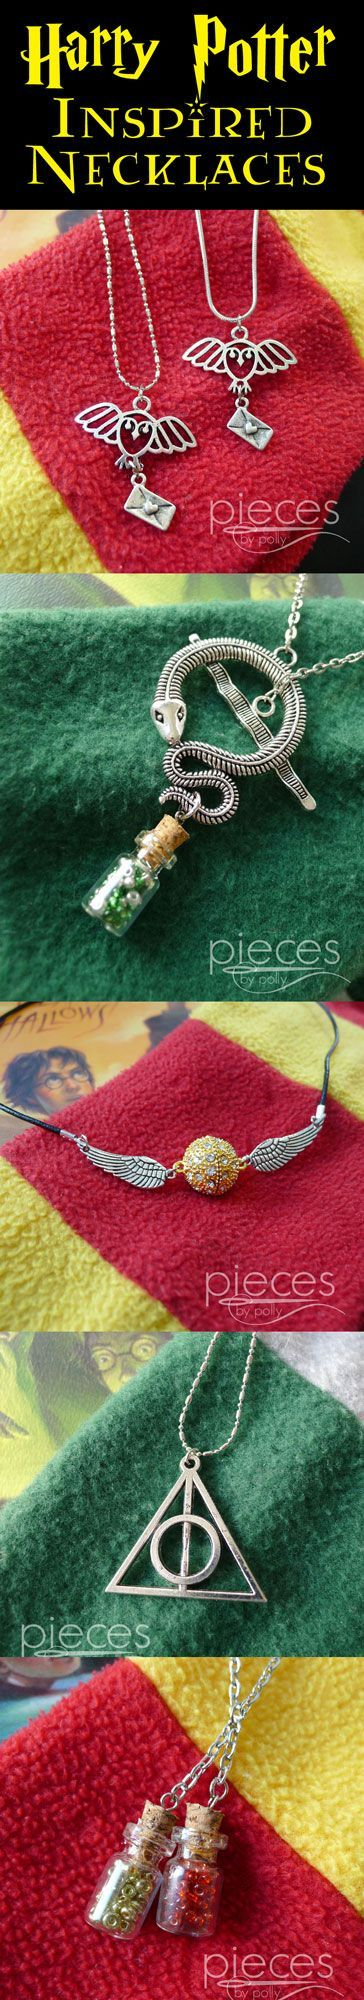 Cute Harry Potter jewelry!